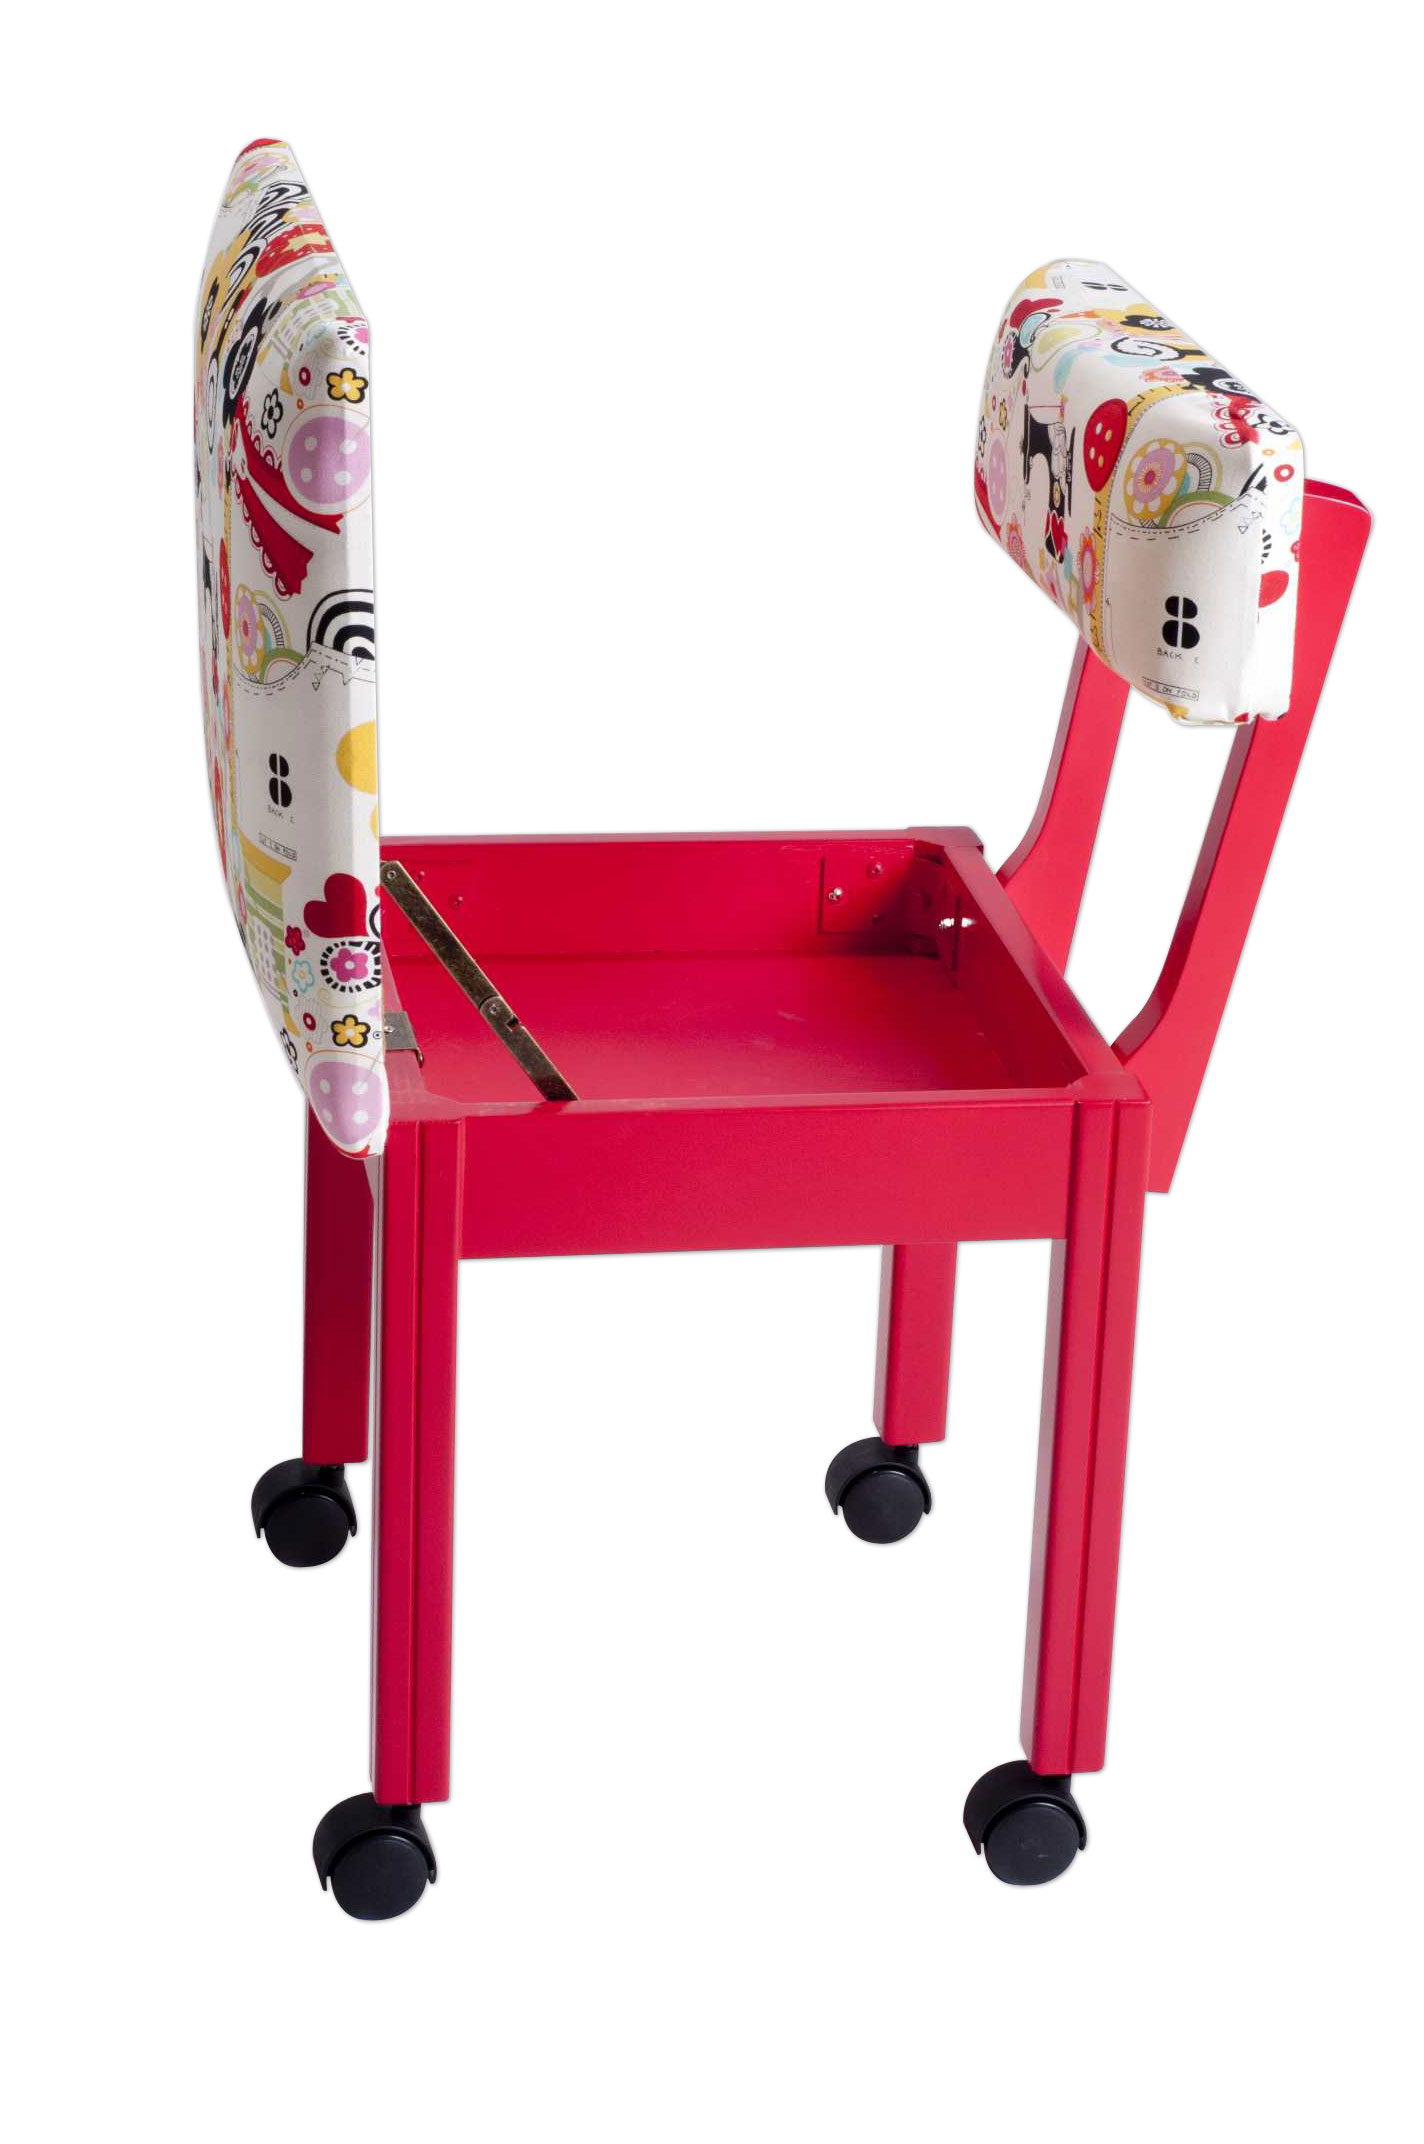 Attirant ... Arrow Sewing Chair Arrow Sewing Cabinet Sewing Chair With Base Storage  Shelve Ebay ...